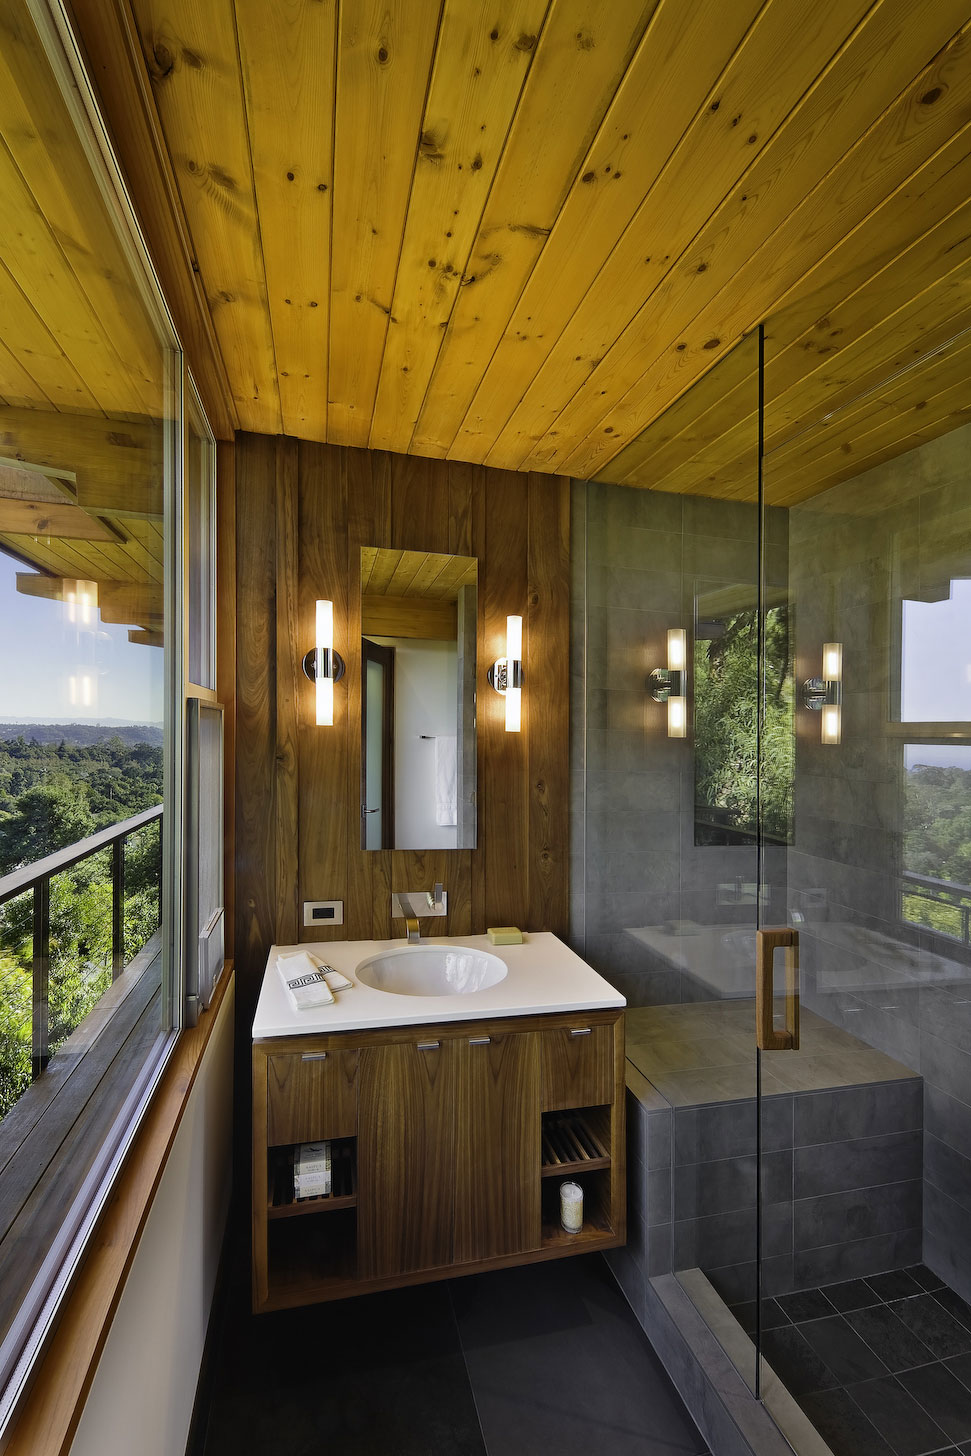 Sink, Shower, Mid-Century Modern Home in Santa Barbara, California